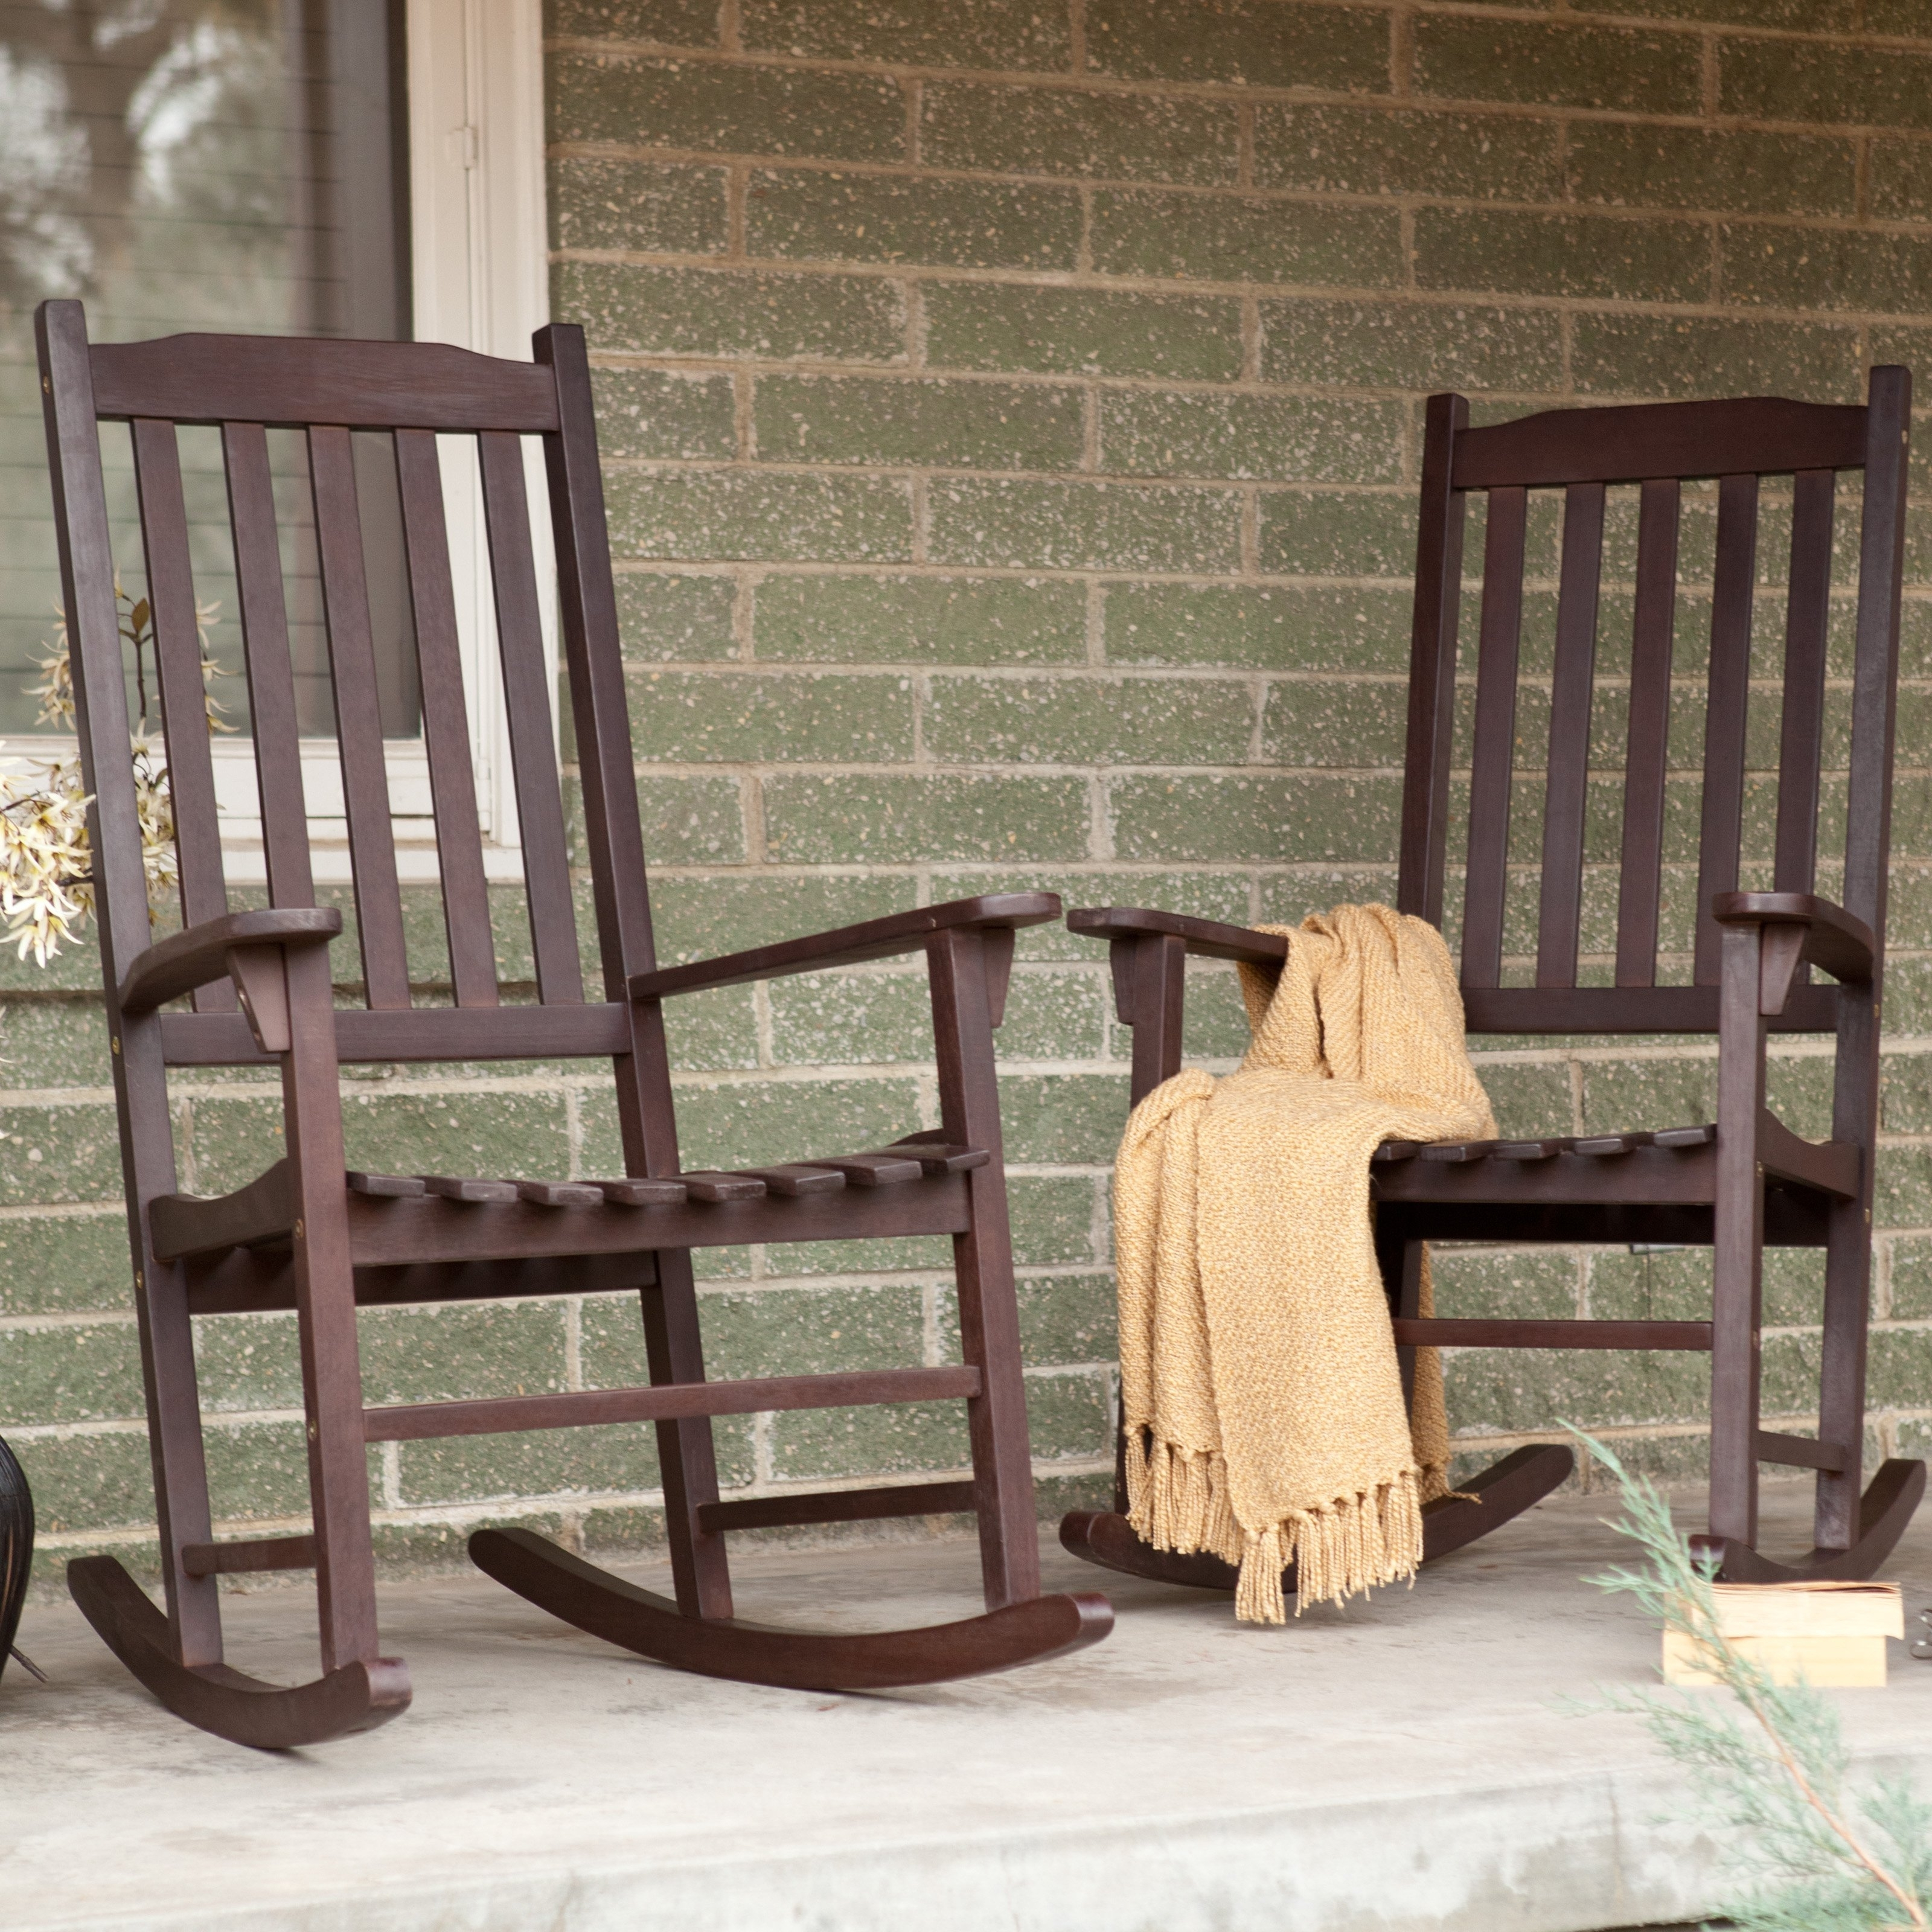 How To Choose Comfortable Outdoor Rocking Chairs – Yonohomedesign In Favorite Resin Wicker Patio Rocking Chairs (View 5 of 20)